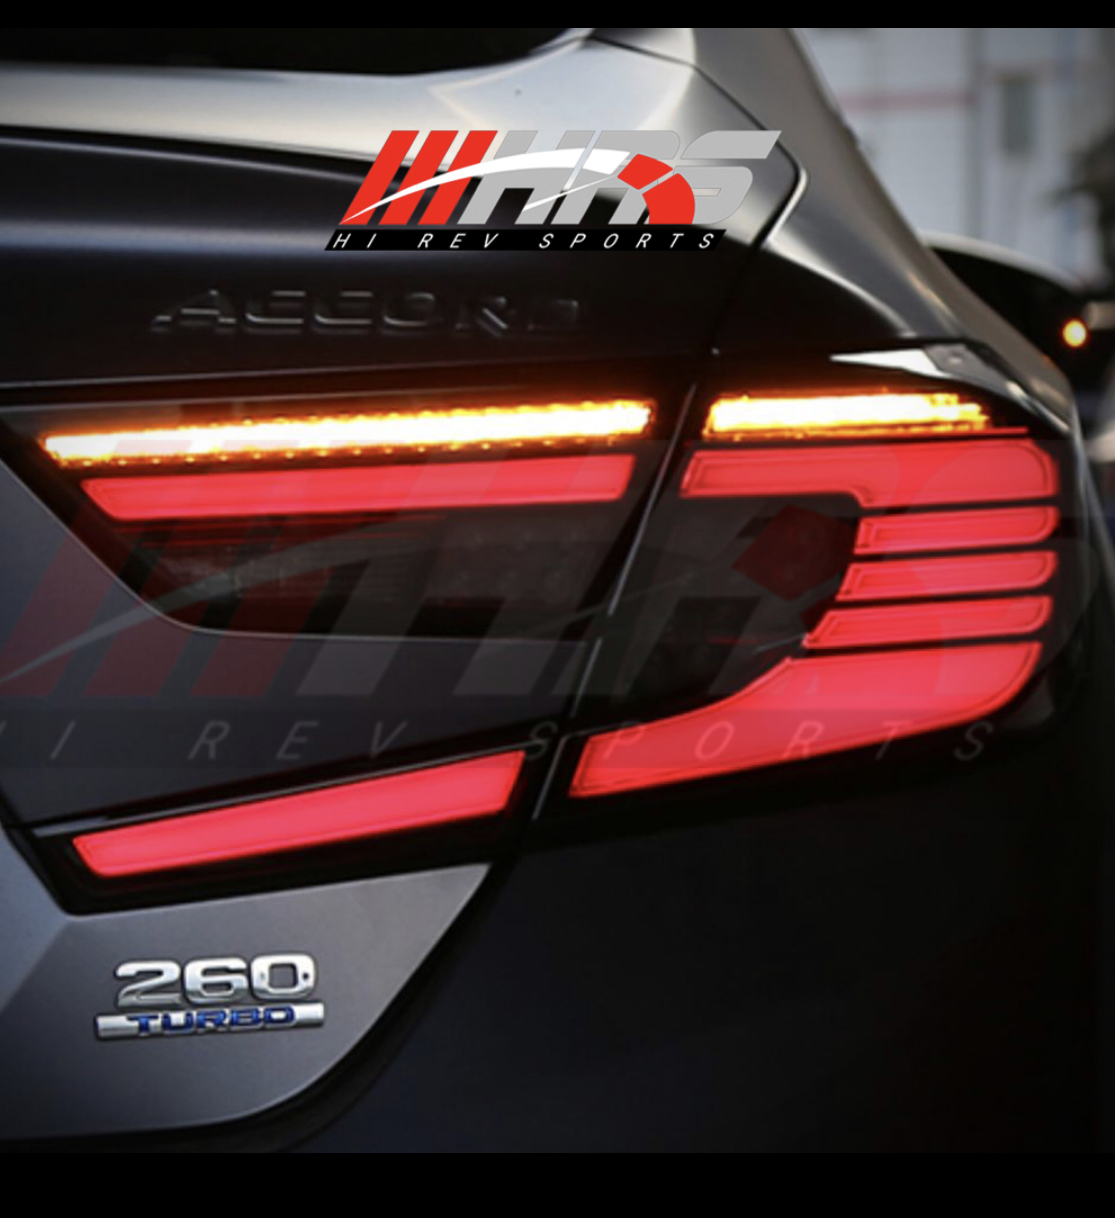 Anyone Have These Led Tail Lights Will Smoked Tail Lights Be A Problem With Police Drive Accord Honda Forums